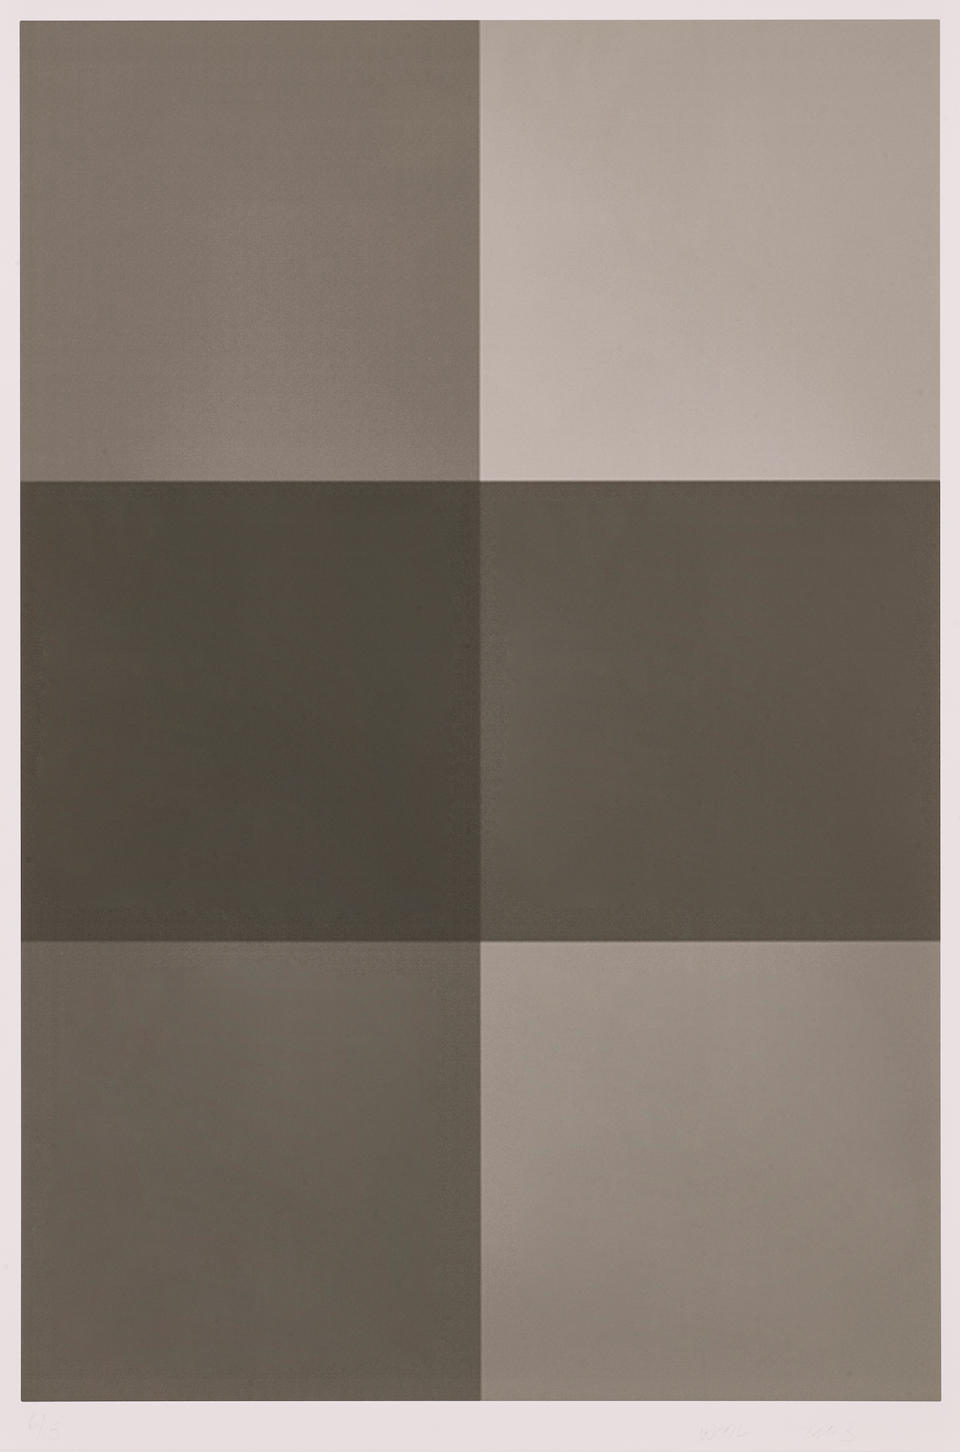 Christopher Wool (born 1955); Untitled (5 works);